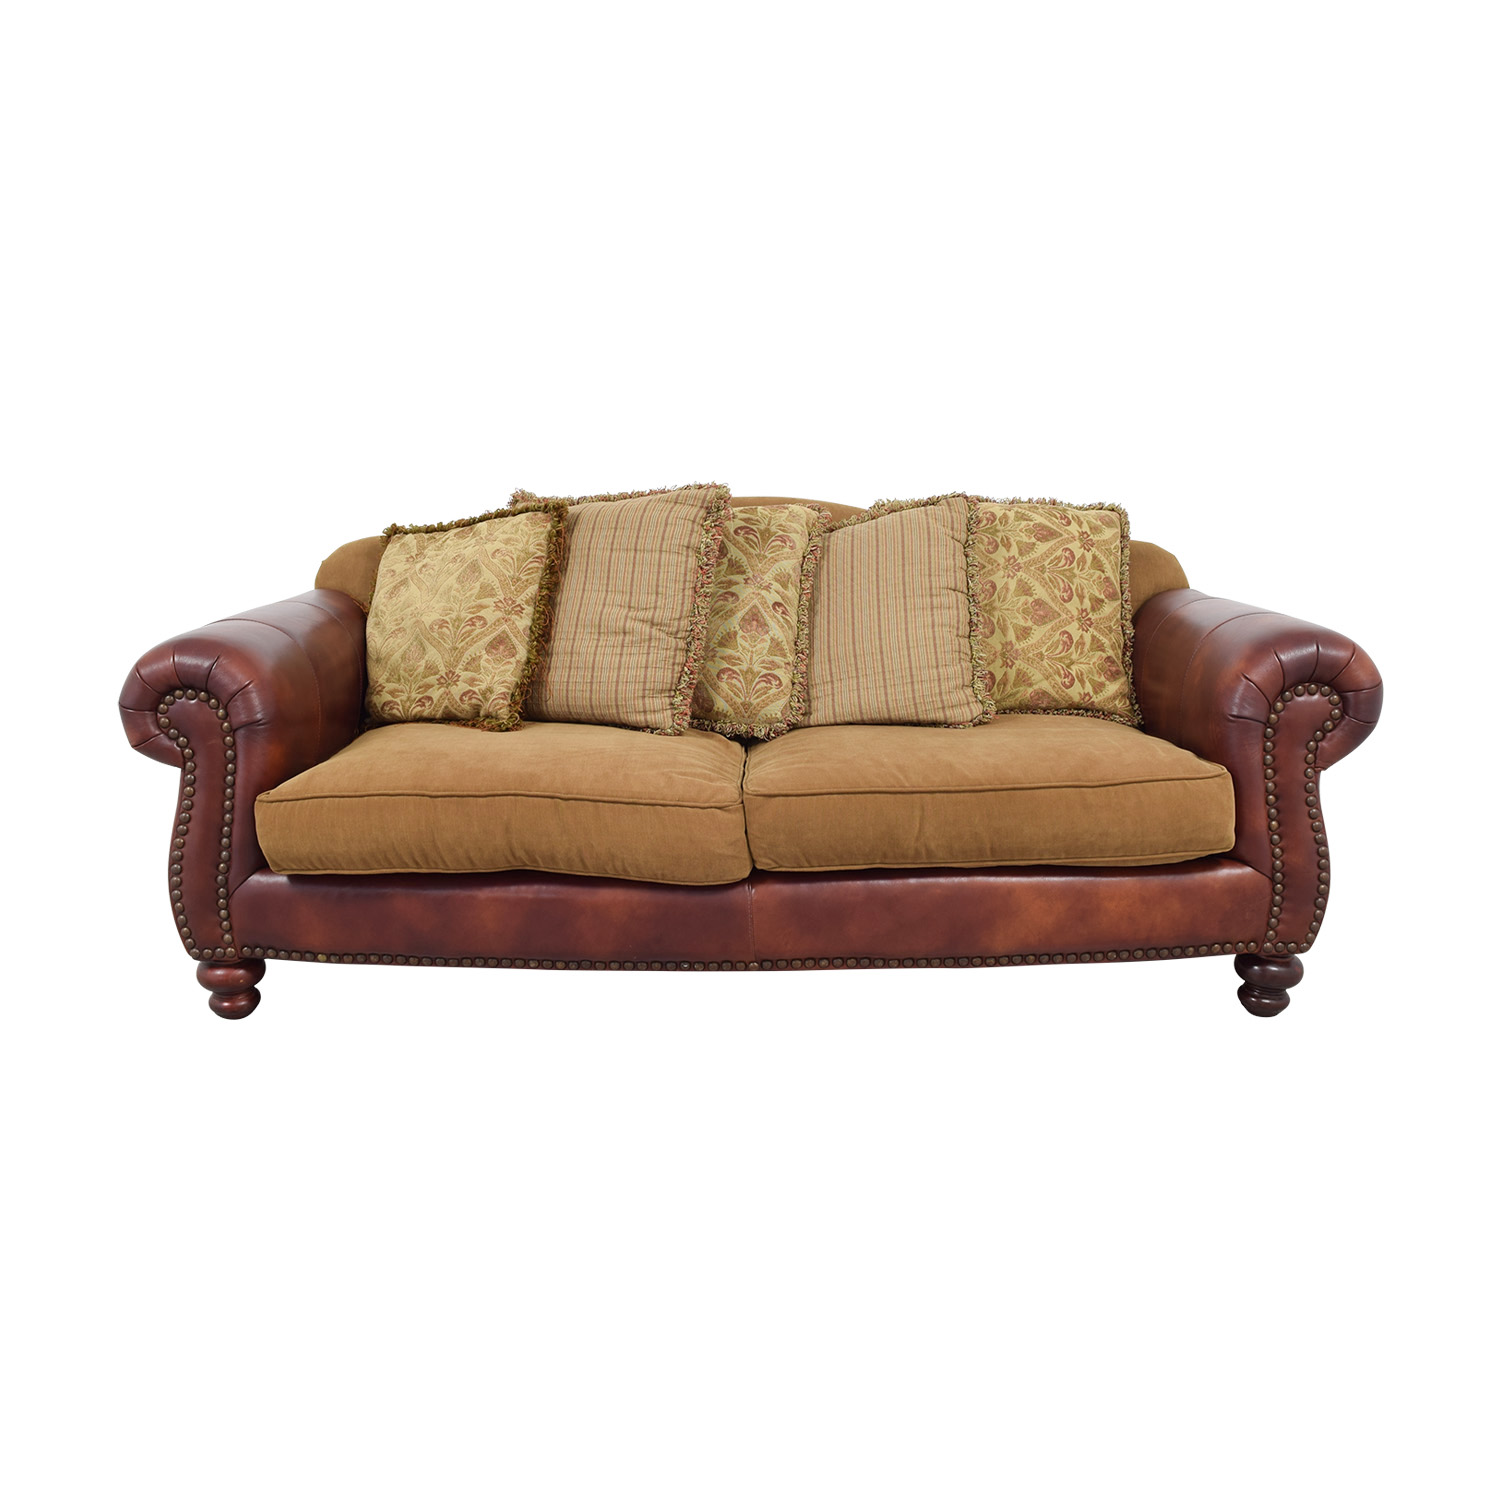 Suffern Fine Furniture Distinctions Leather U0026 Microfiber Nailhead Sofa  Suffern Fine Furniture